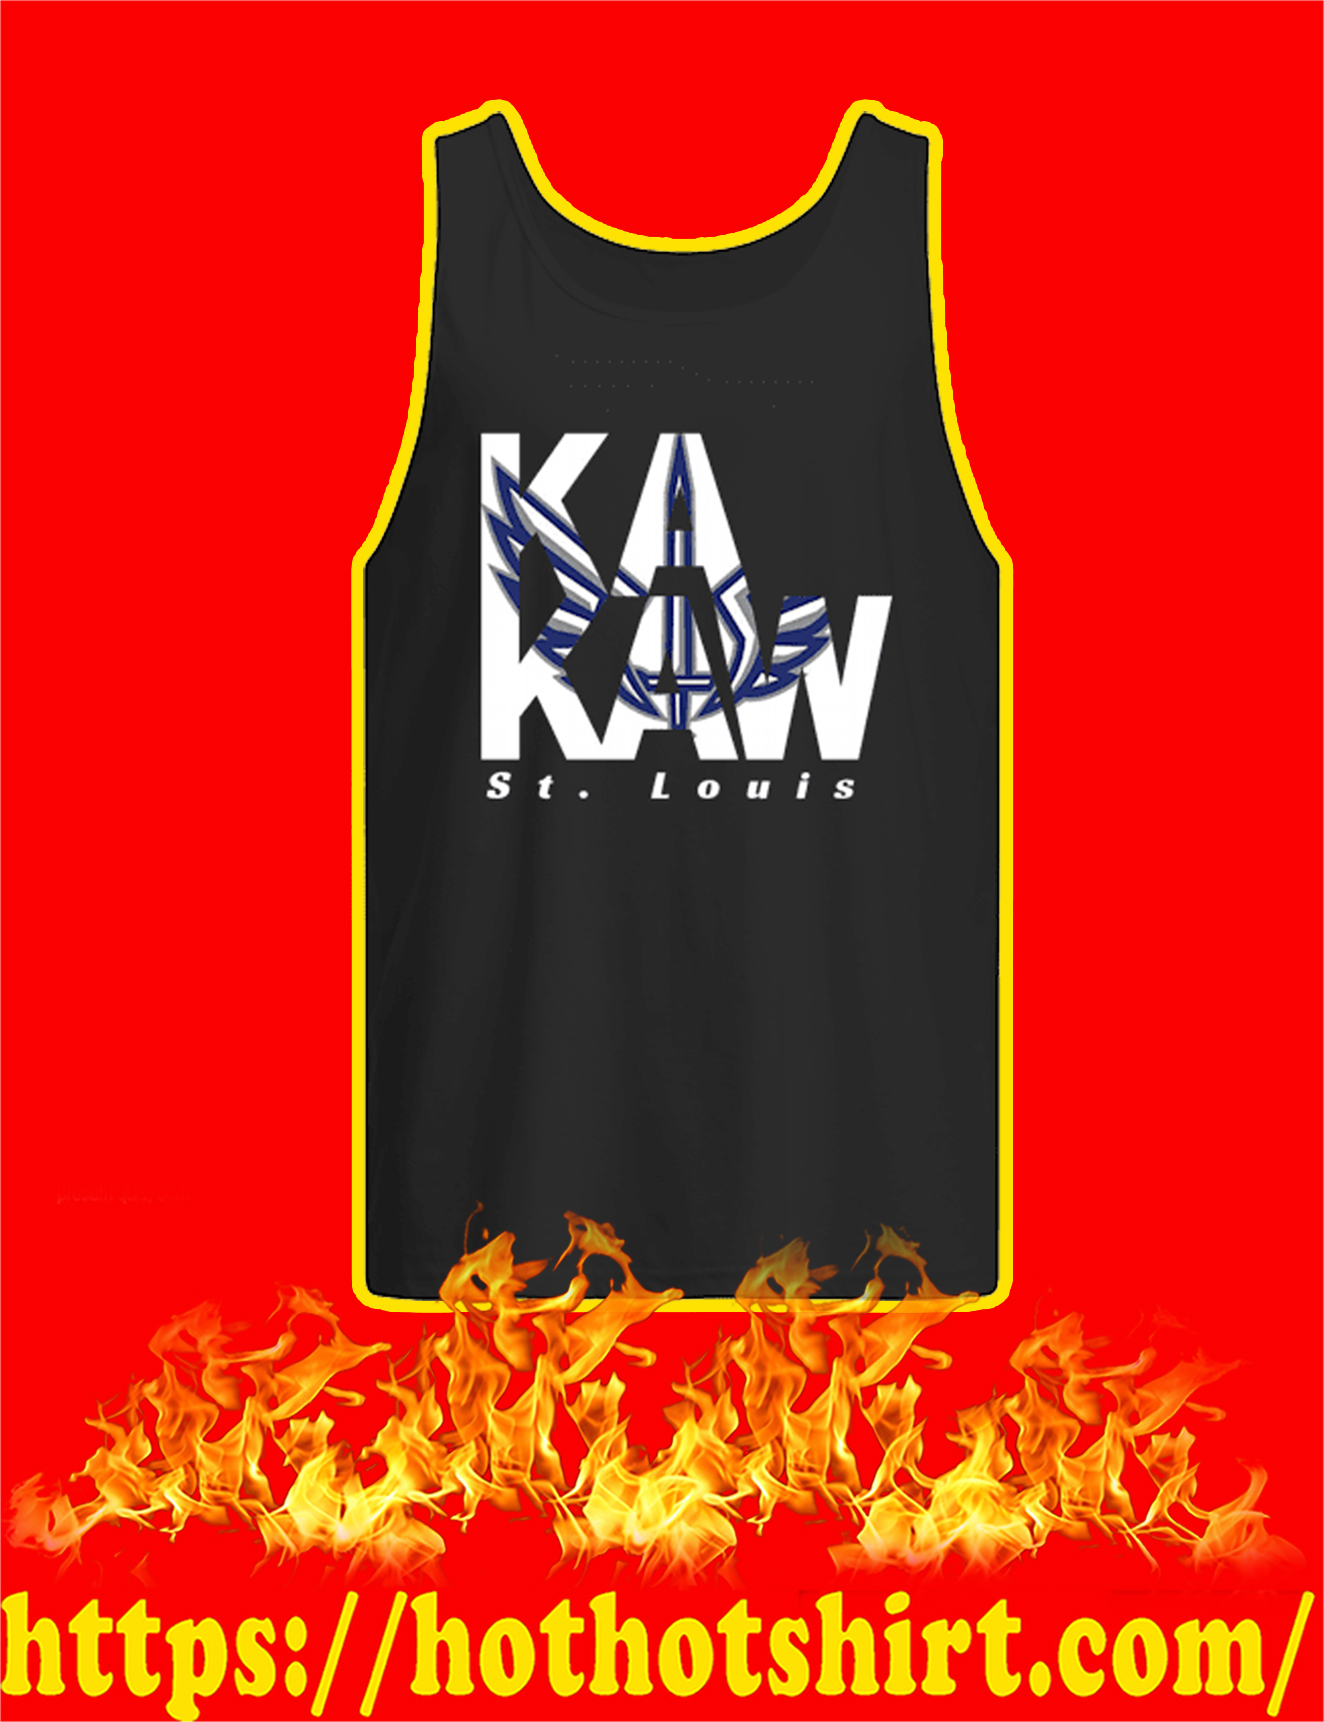 Kaw St Louis Tank Top